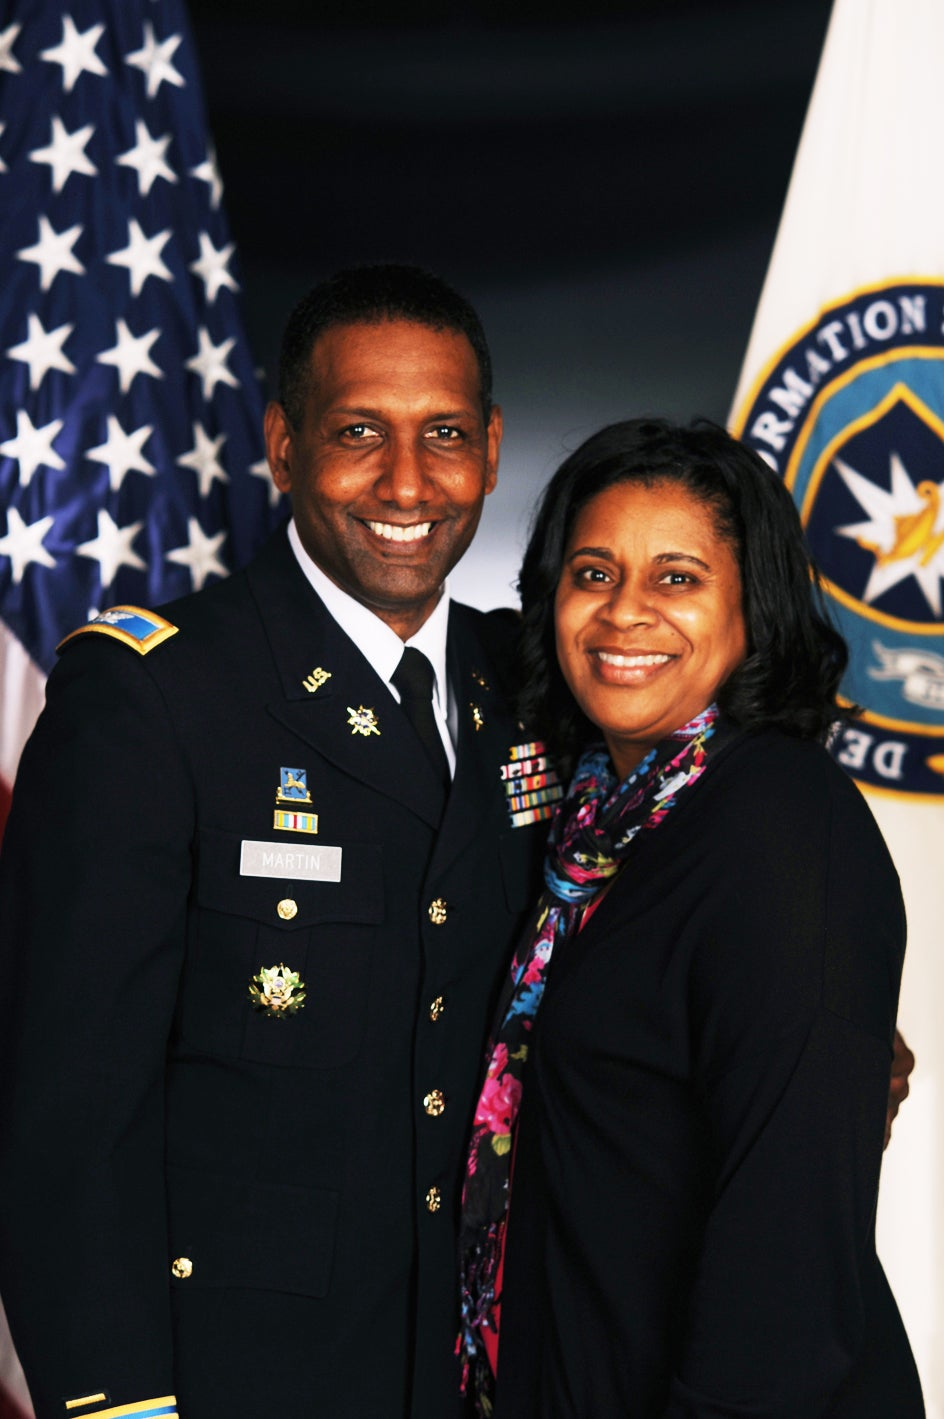 My Life As a Military Wife: He Serves Our Country, I Serve Our Family